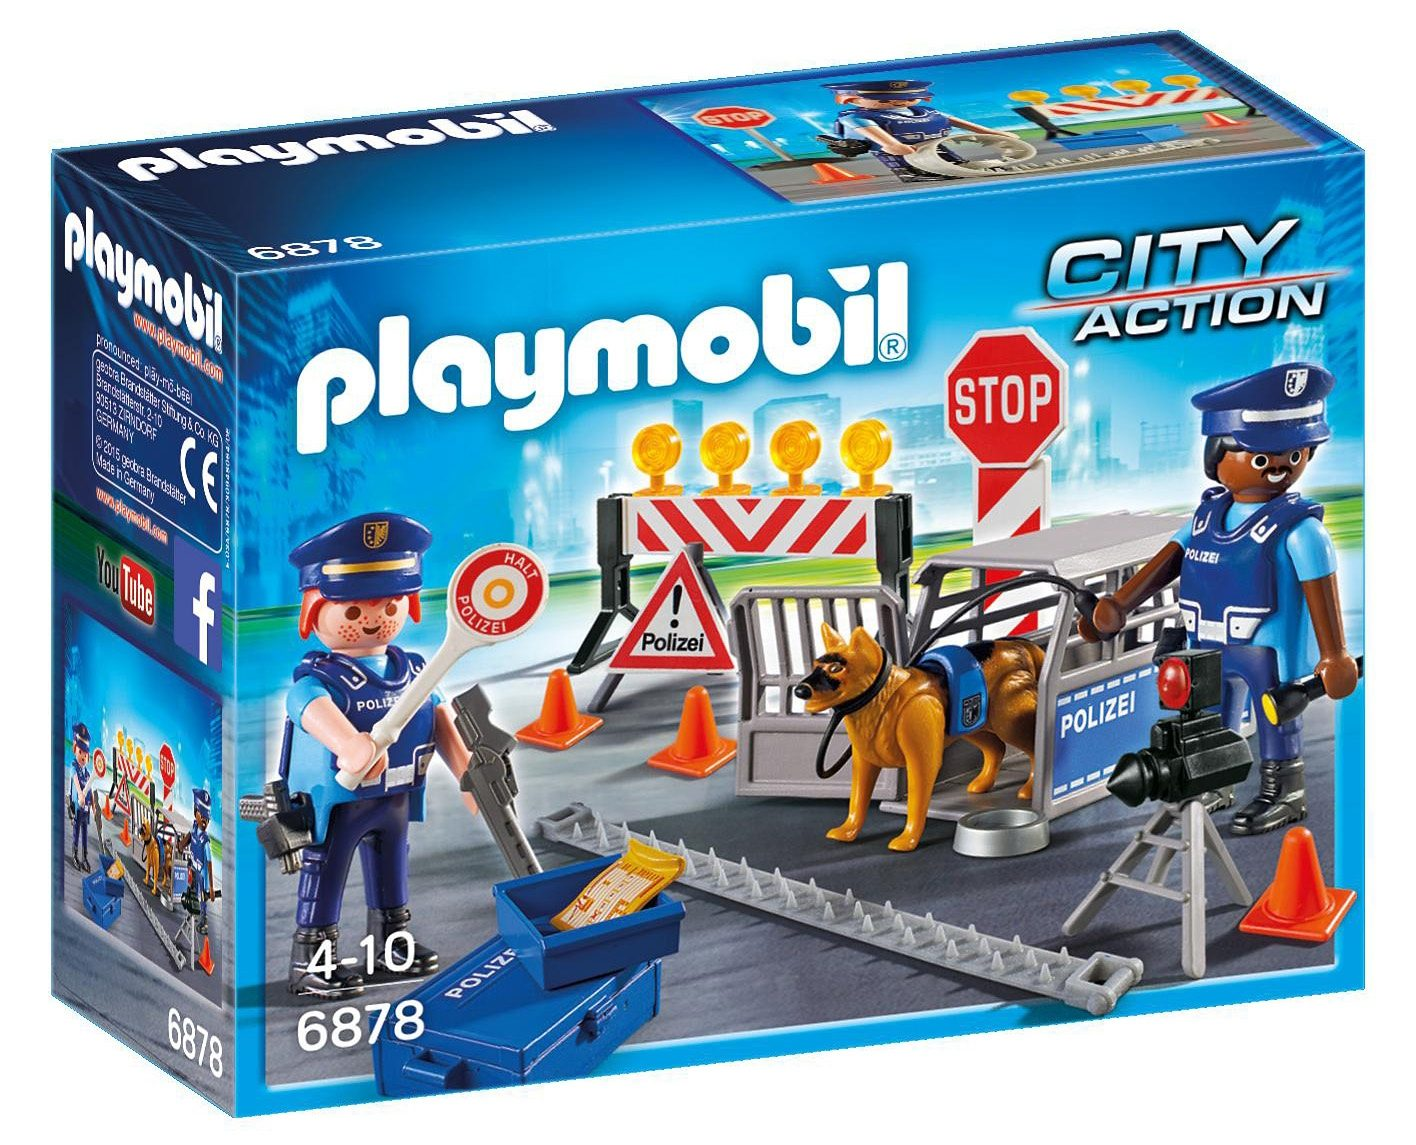 Playmobil® Polizei-Straßensperre (6878), »City Action«